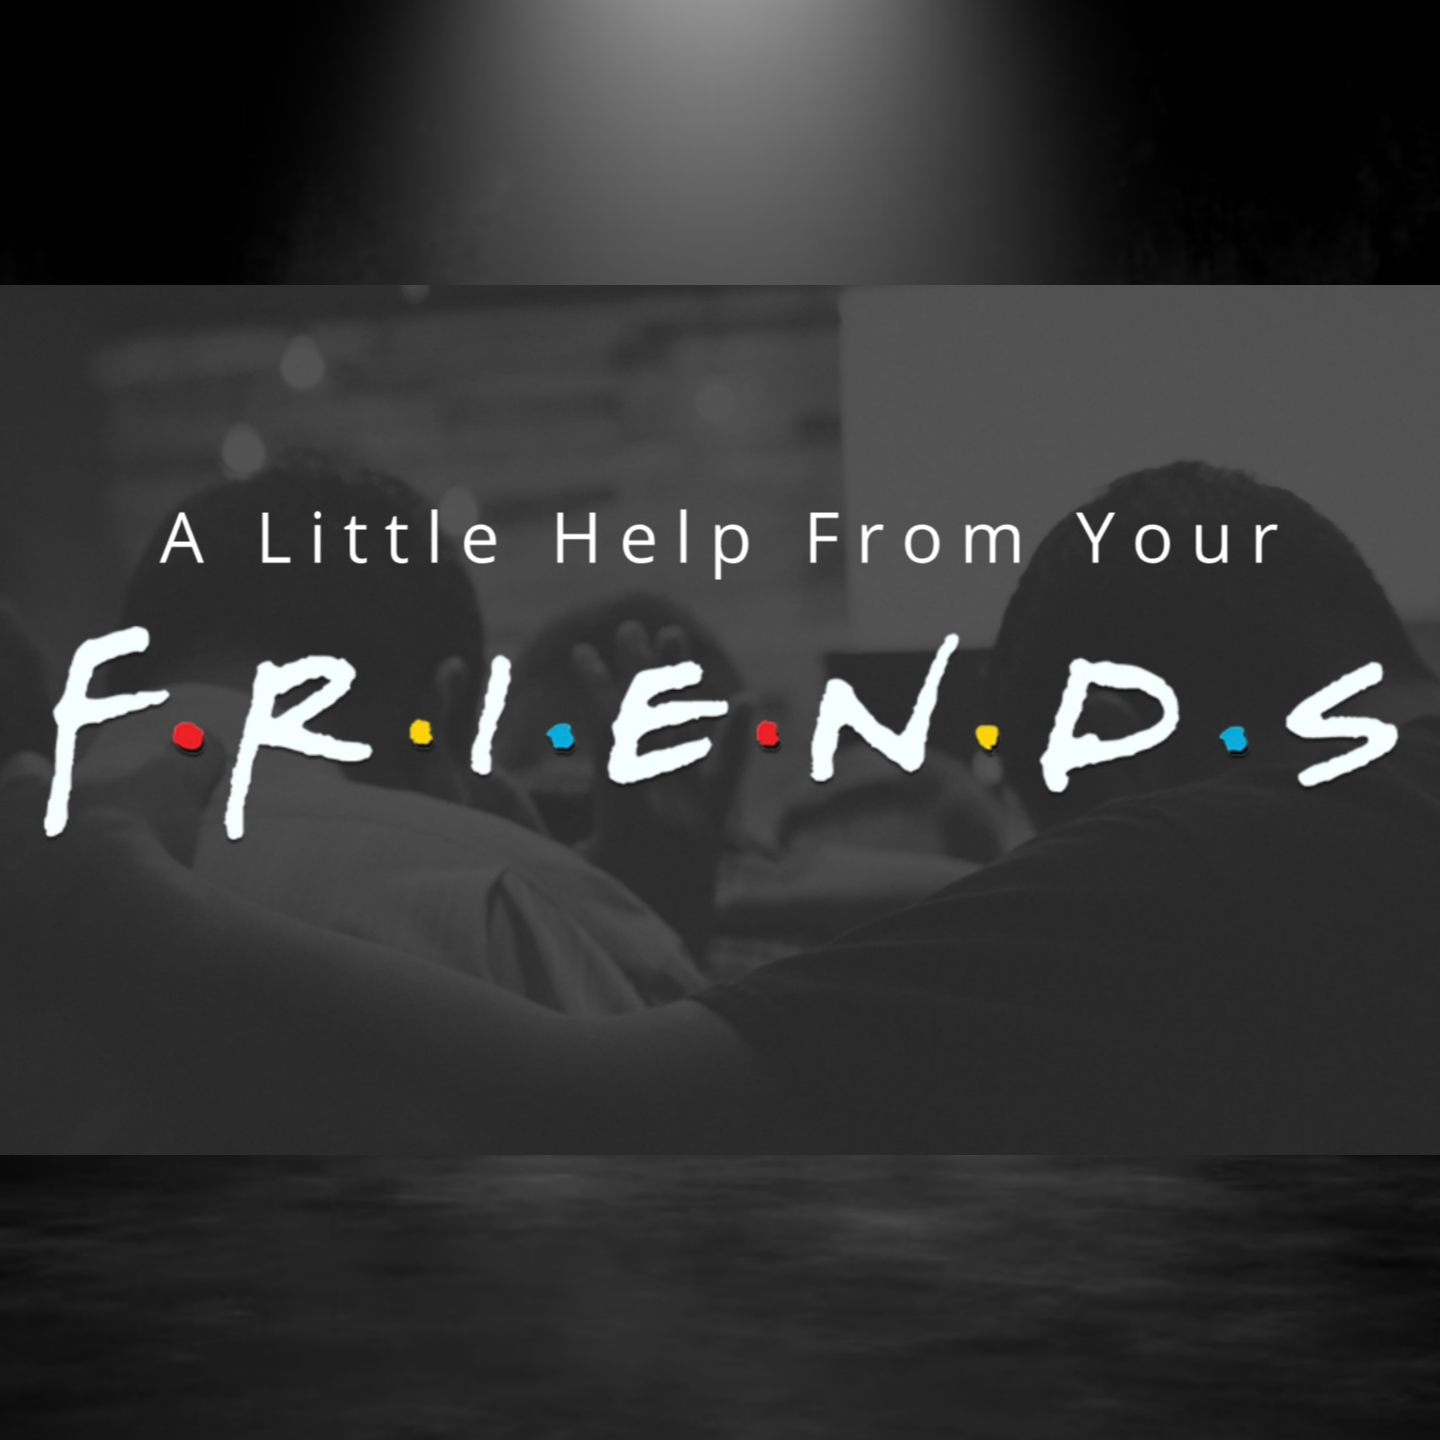 A Little Help From Your Friends